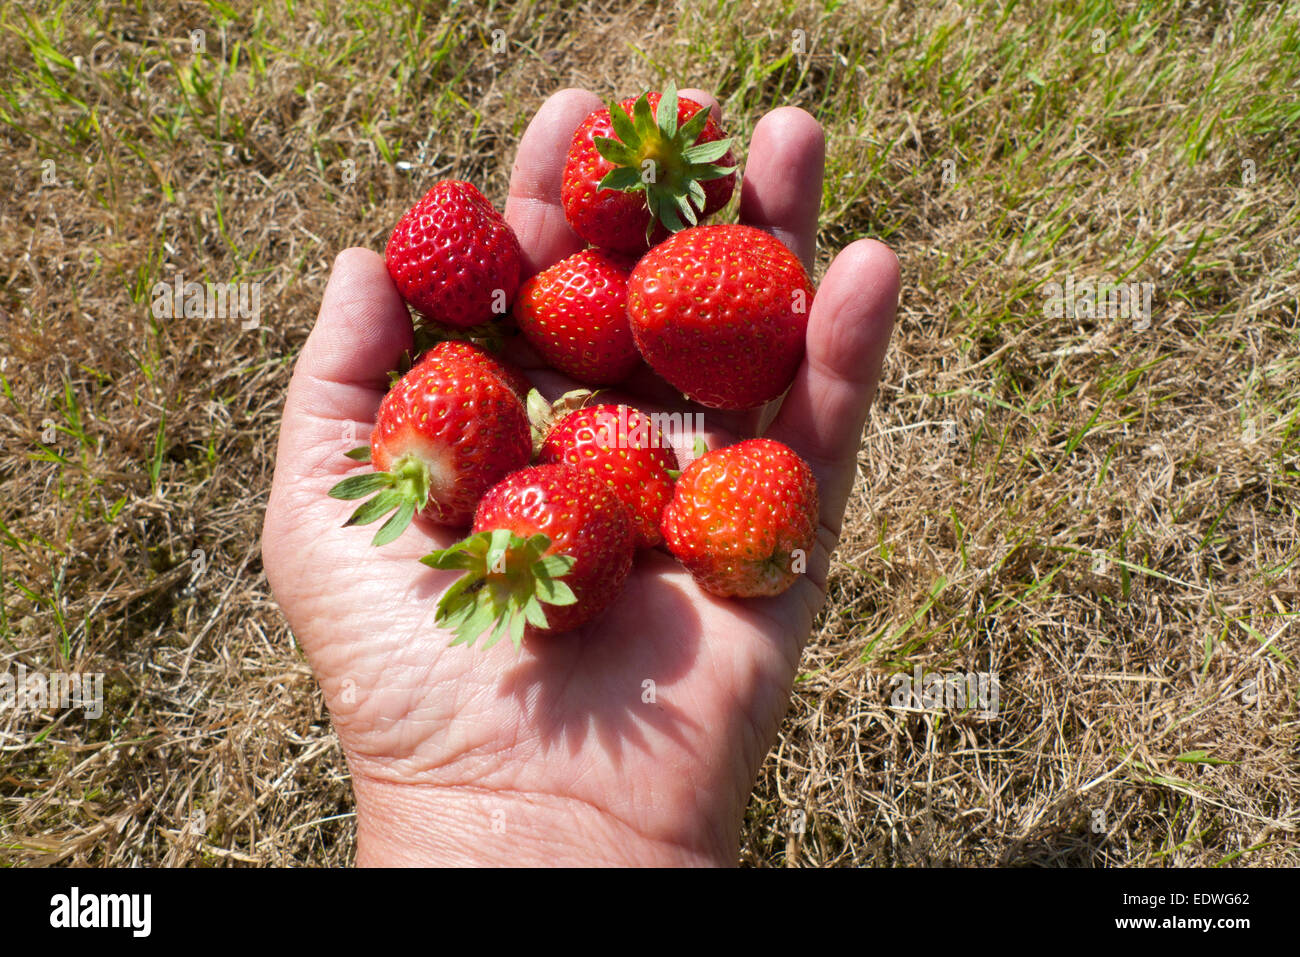 A hand with a handful of fresh ripe strawberries in summer Wales, Britain, UK  KATHY DEWITT Stock Photo